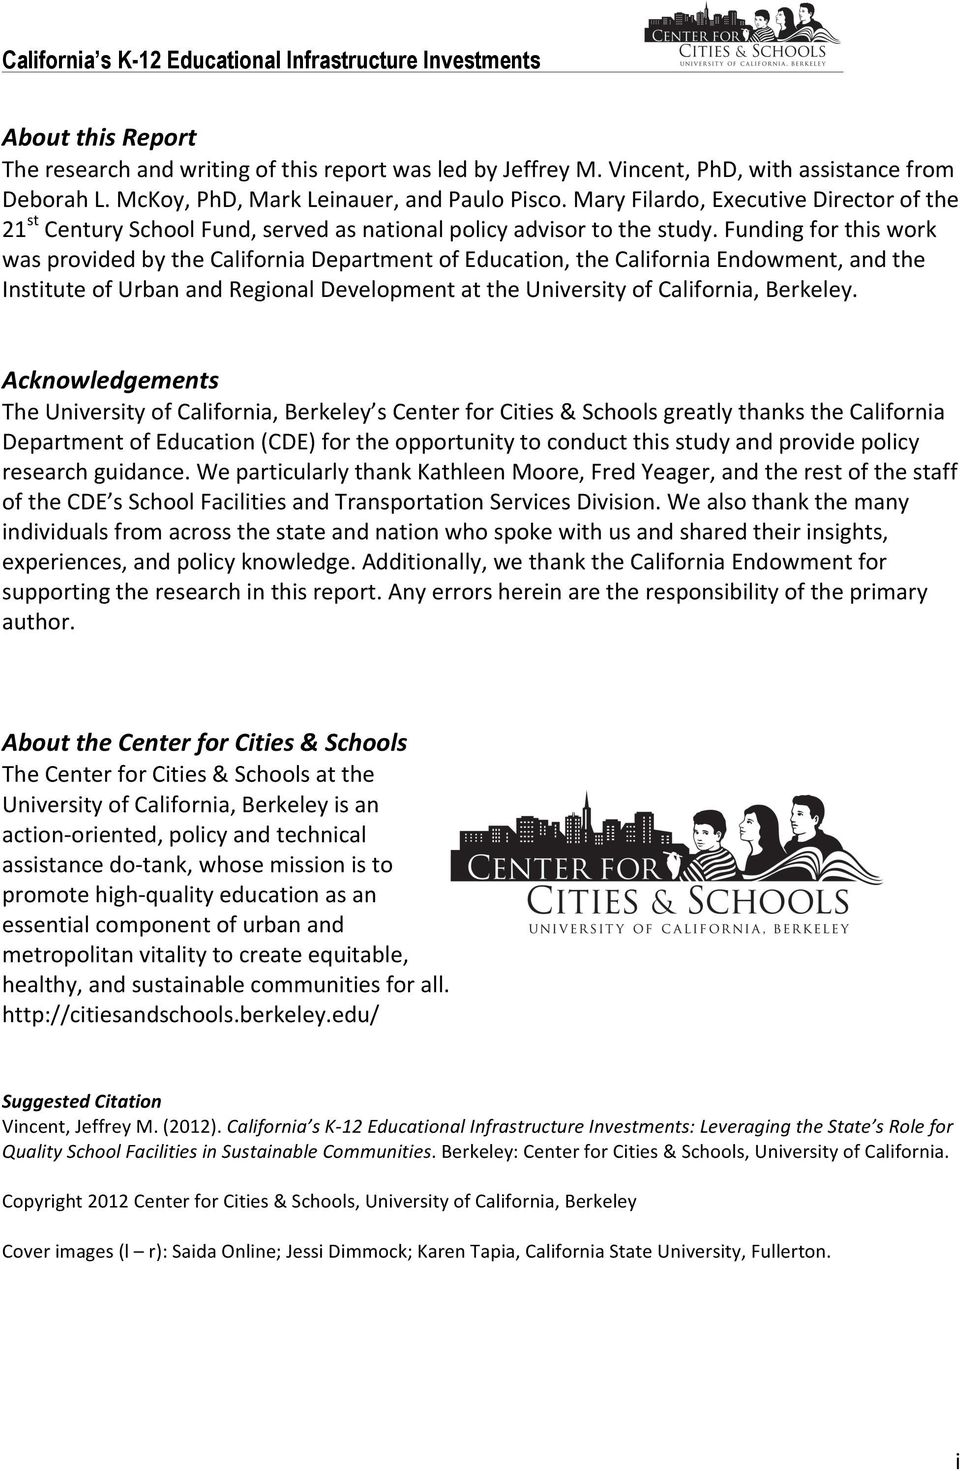 Funding for this work was provided by the California Department of Education, the California Endowment, and the Institute of Urban and Regional Development at the University of California, Berkeley.